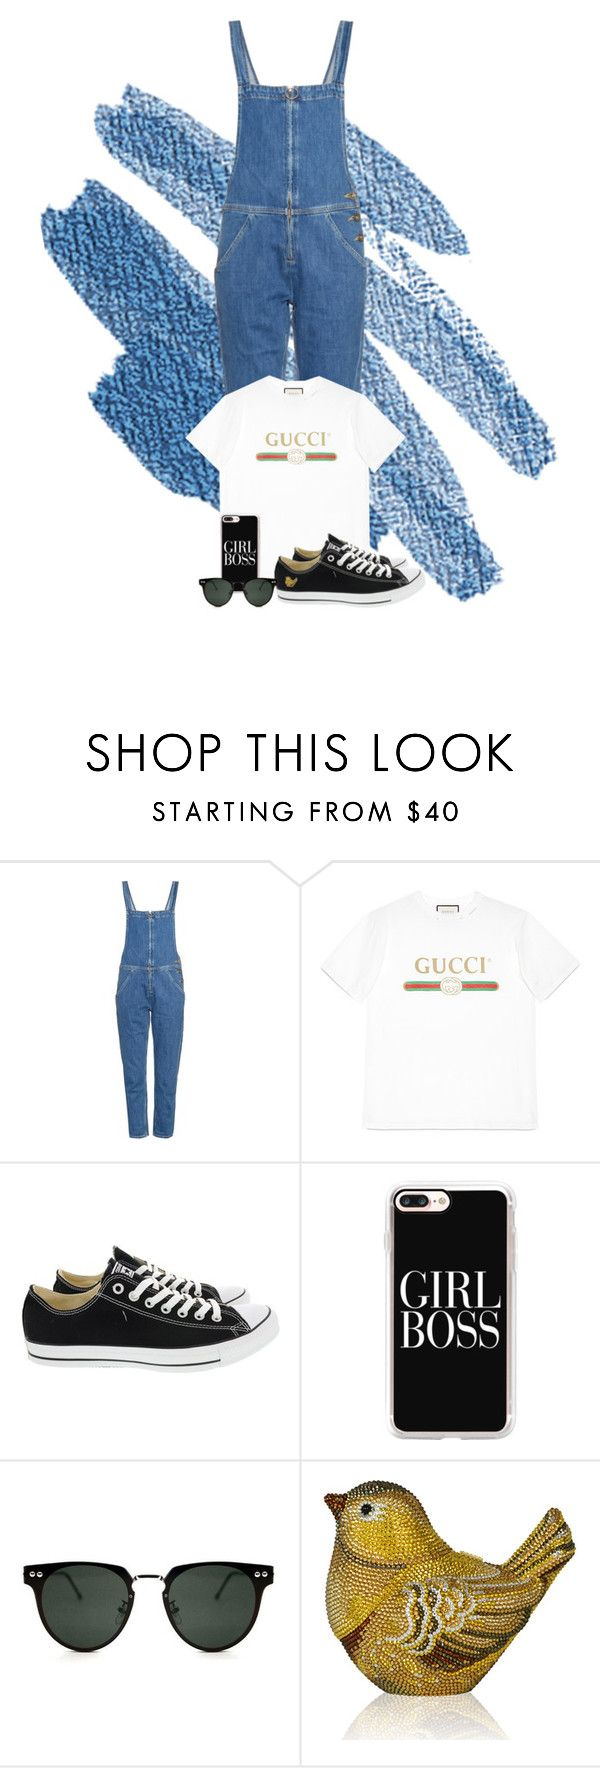 Untitled 2189 By Cardigurl Liked On Polyvore Featuring Mih Jeans Gucci